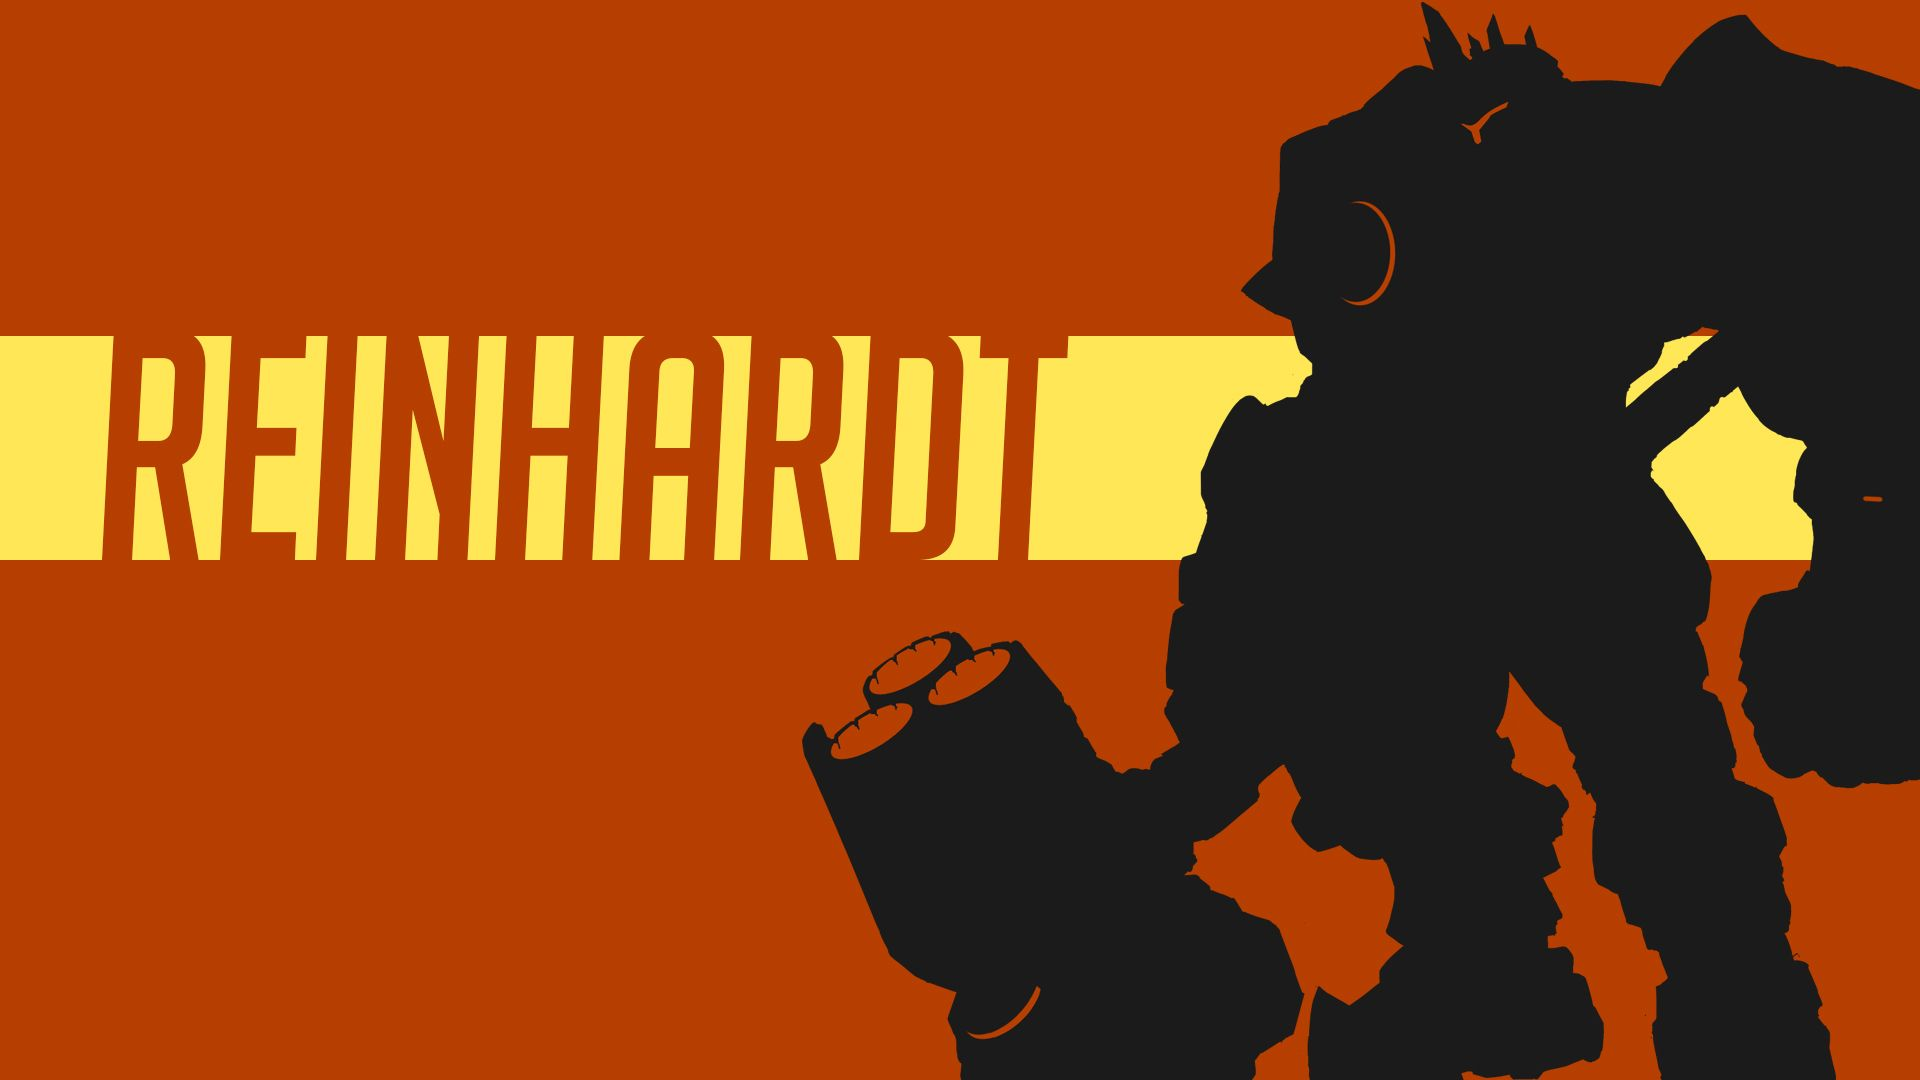 Video Game Overwatch  Reinhardt Wallpaper